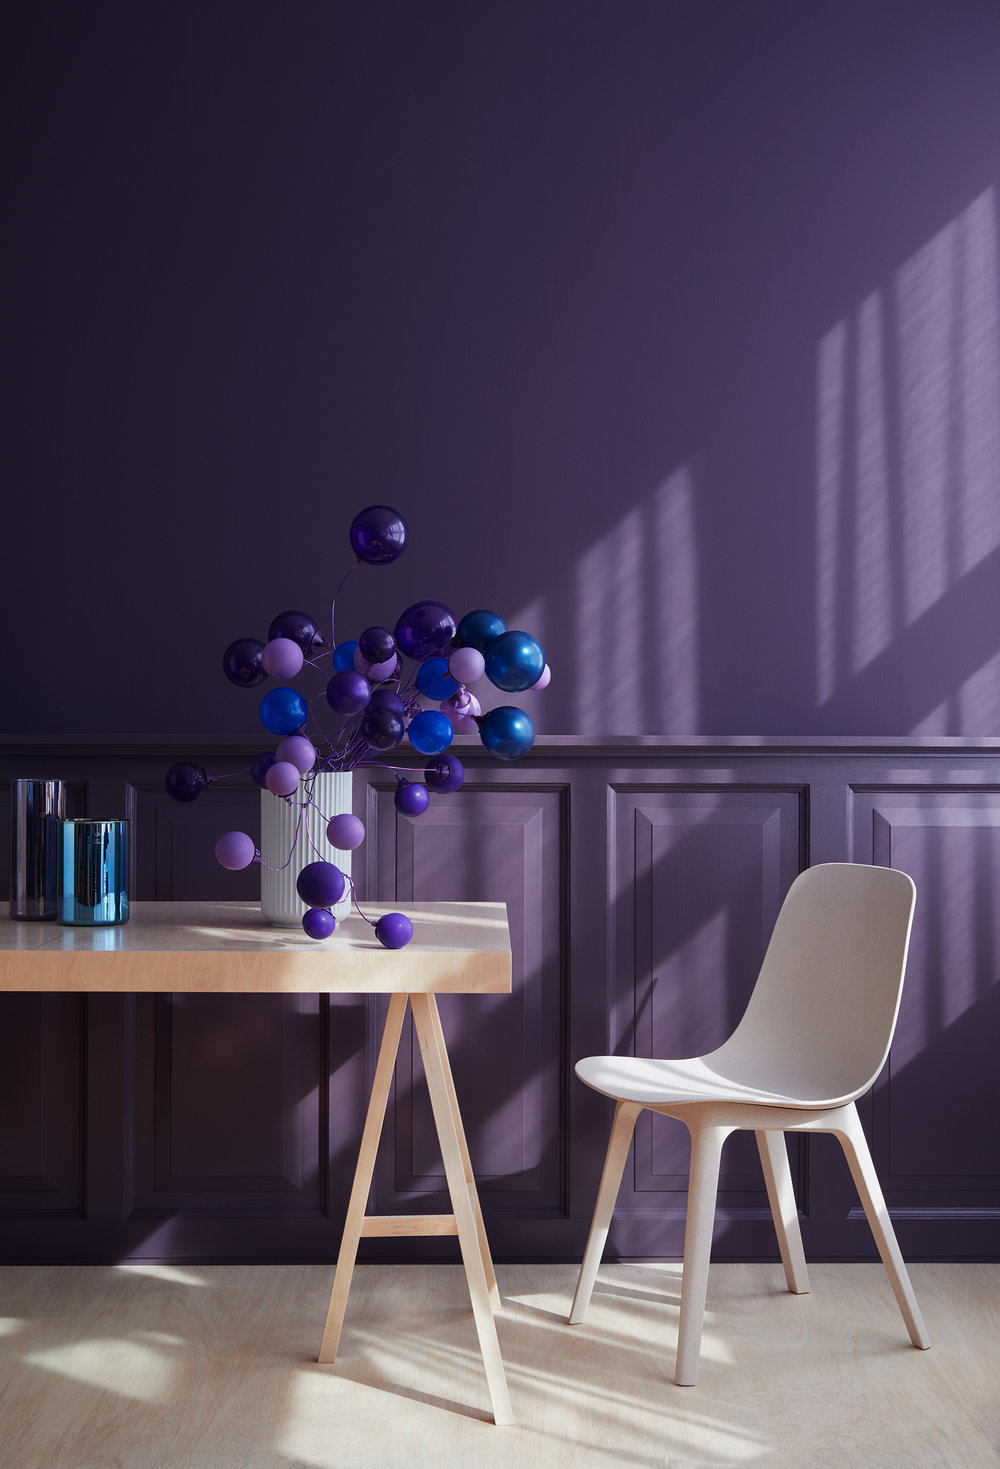 GETTING FRIENDS WITH ULTRA VIOLET, PANTONE COLOR OF THE YEAR 2018  BALLOONSTYLING AND SETDESIGN: ANDREA POTOCKI / WLKMNDYS.COM, Photo: Anne Deppe